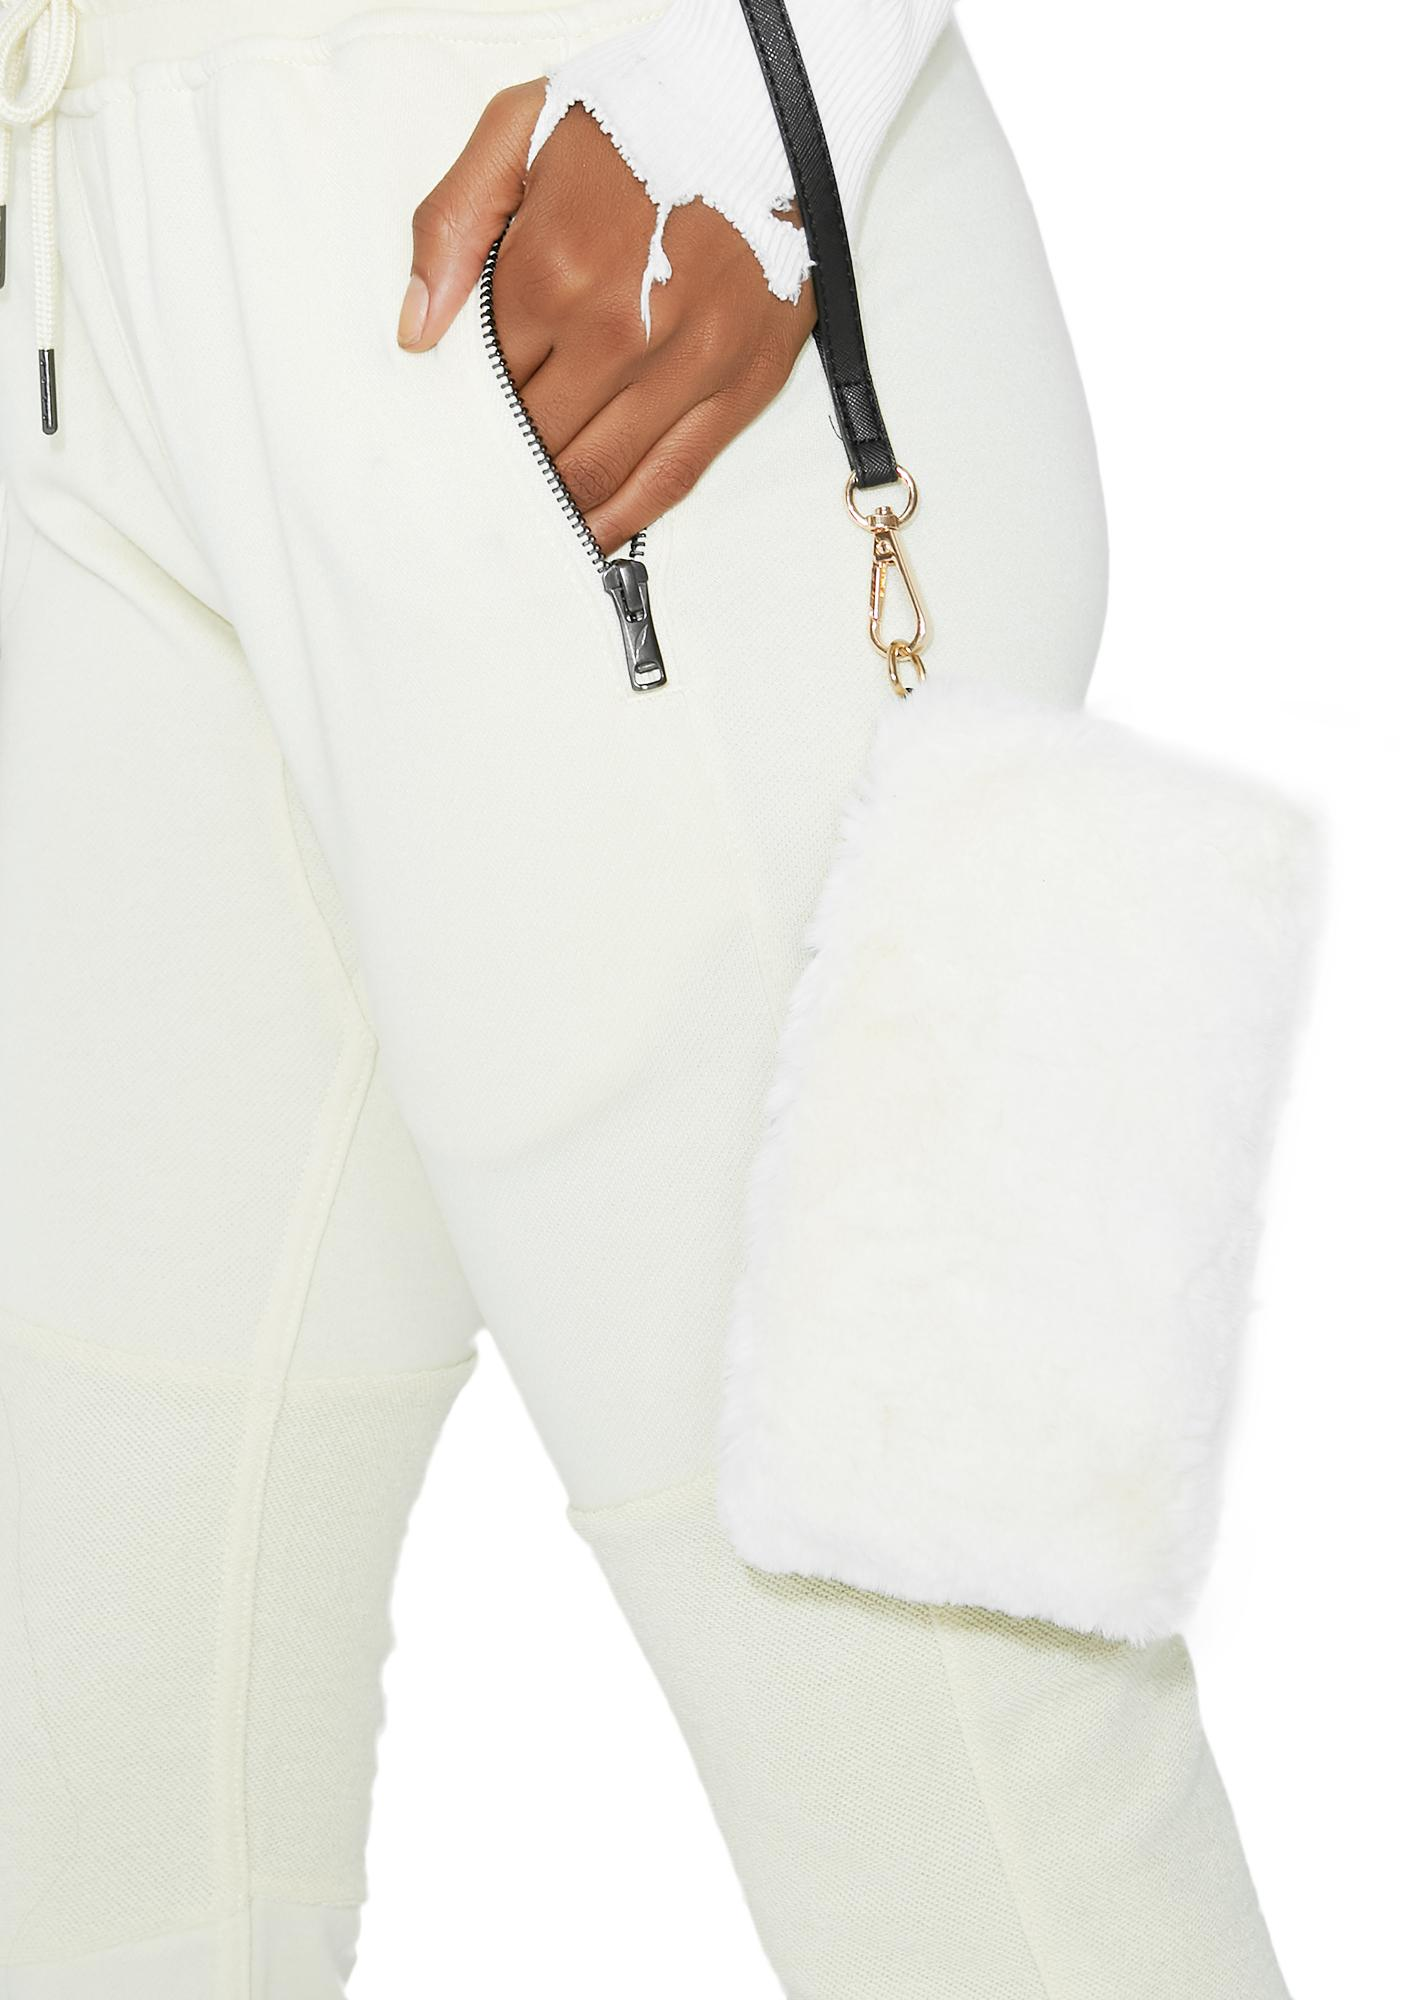 Just A Touch Fuzzy Wristlet